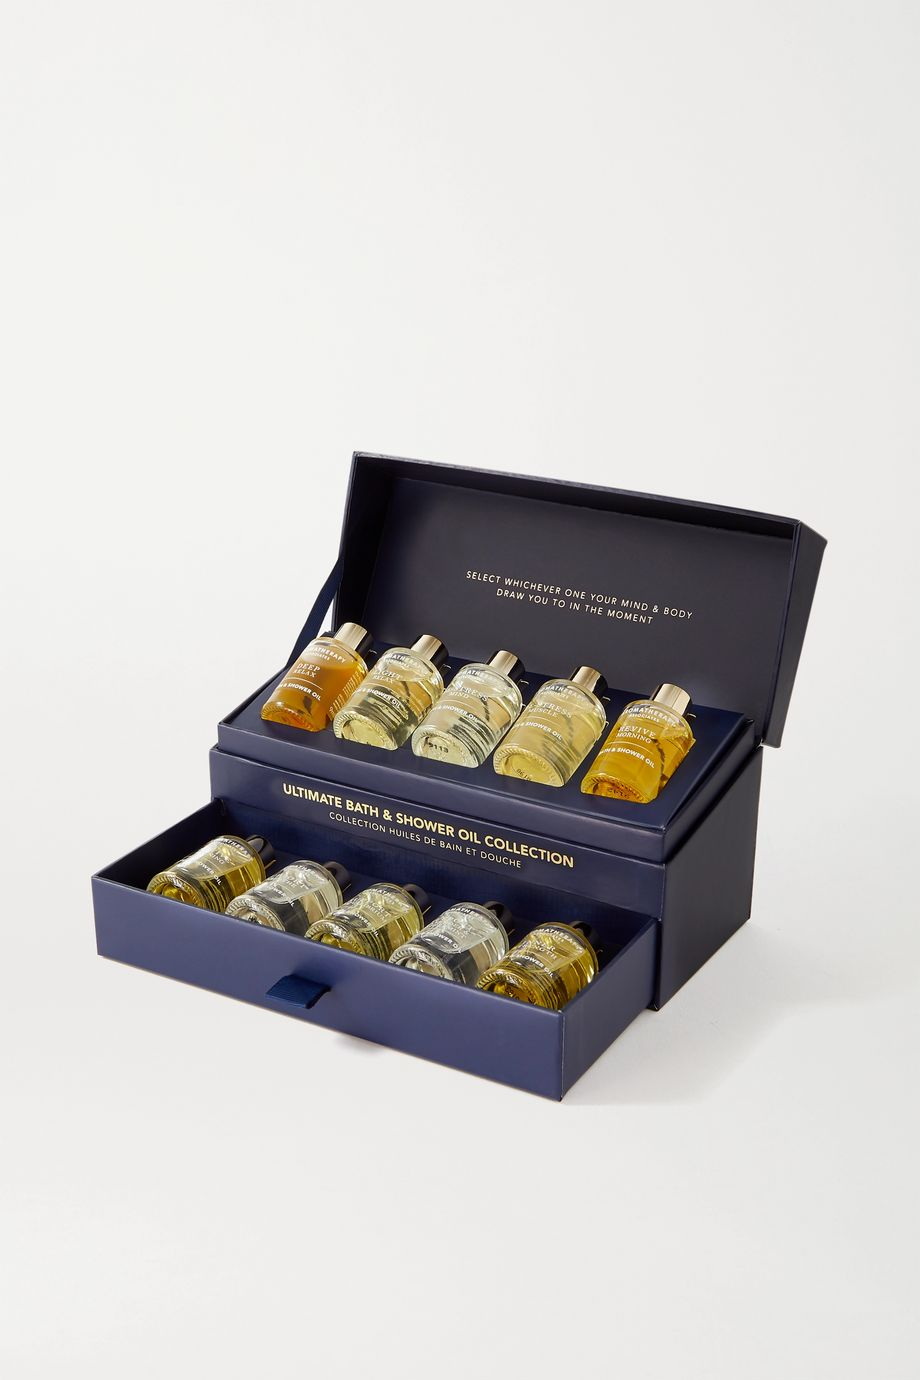 Aromatherapy Associates Ultimate Moments Bath & Shower Oil Collection, 10 x 9ml